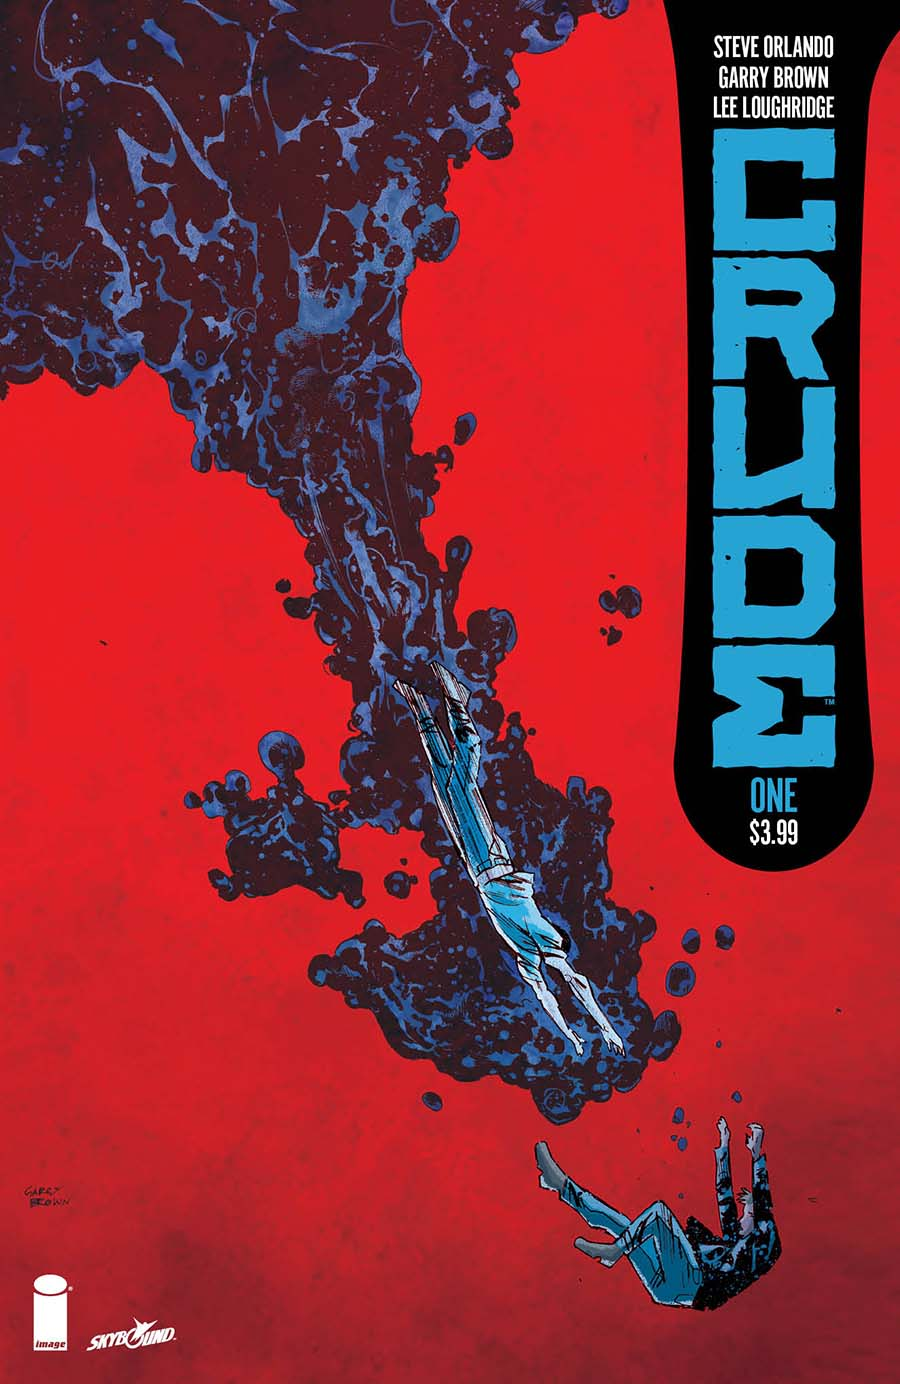 Crude #1 spoiler-free advance review: Off to a good start